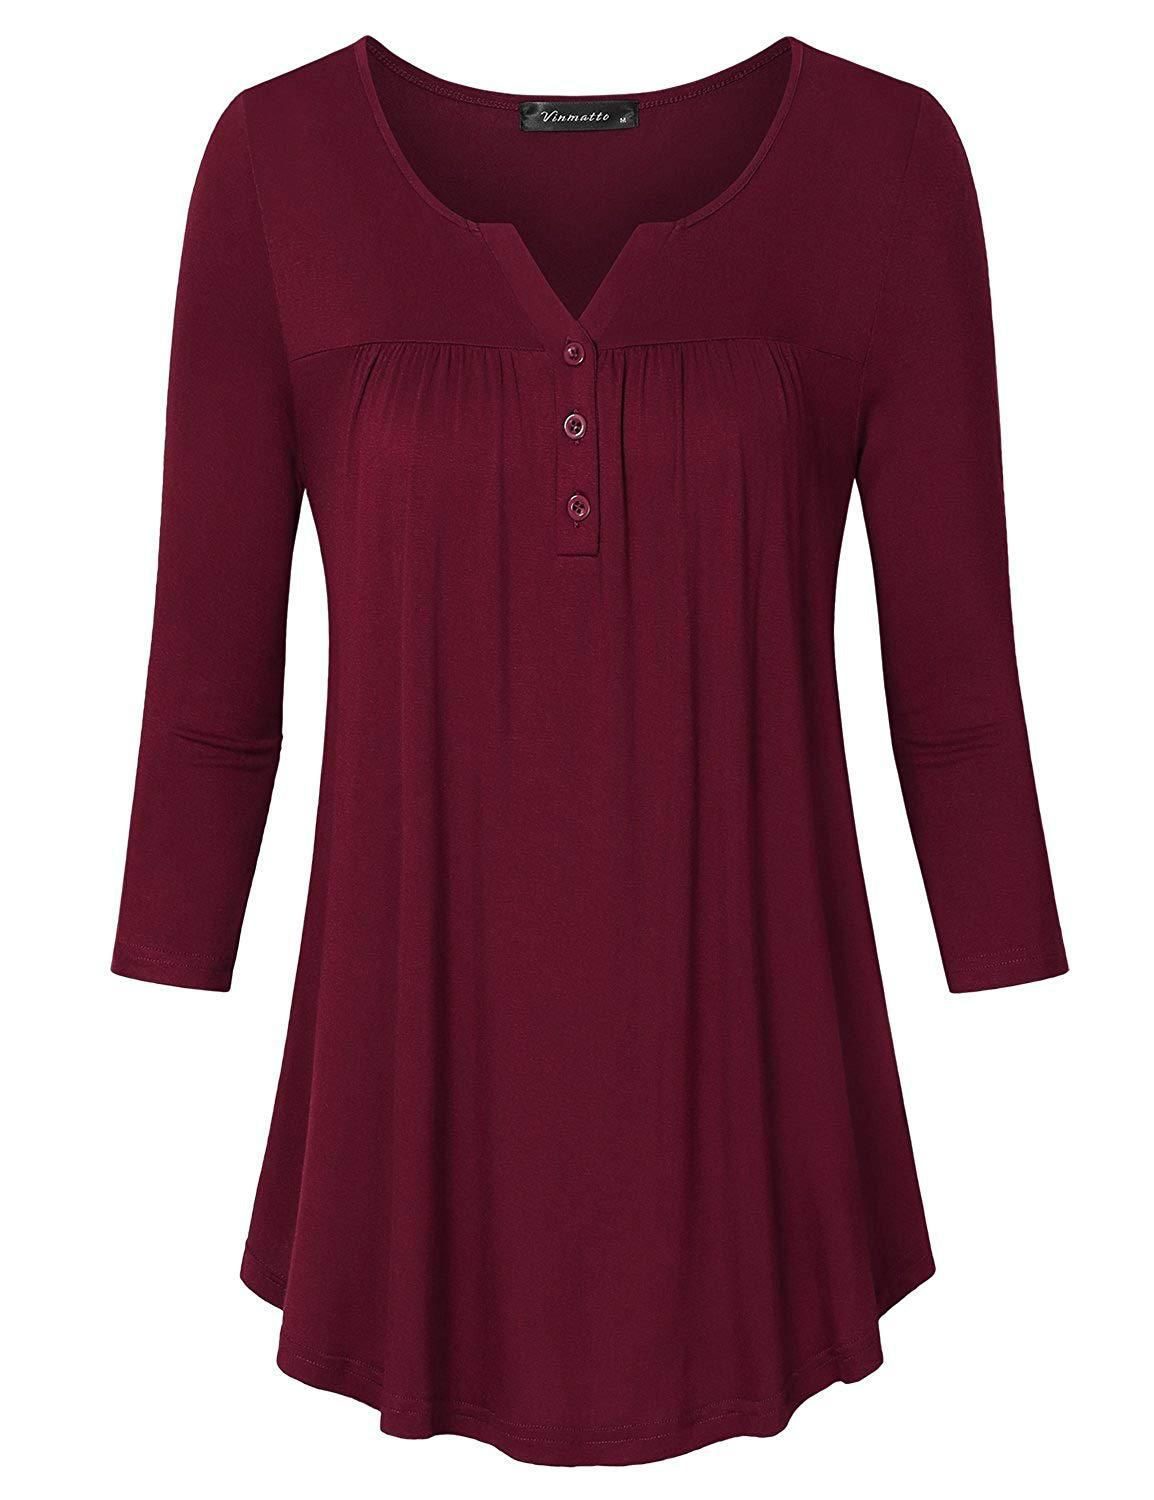 07ed22051ce8 Vinmatto Womens 34 Sleeve Henley V Neck Pleated Button Details Tunic Shirt  at Amazon Womens Clothing store -- Amazon Affiliate link.